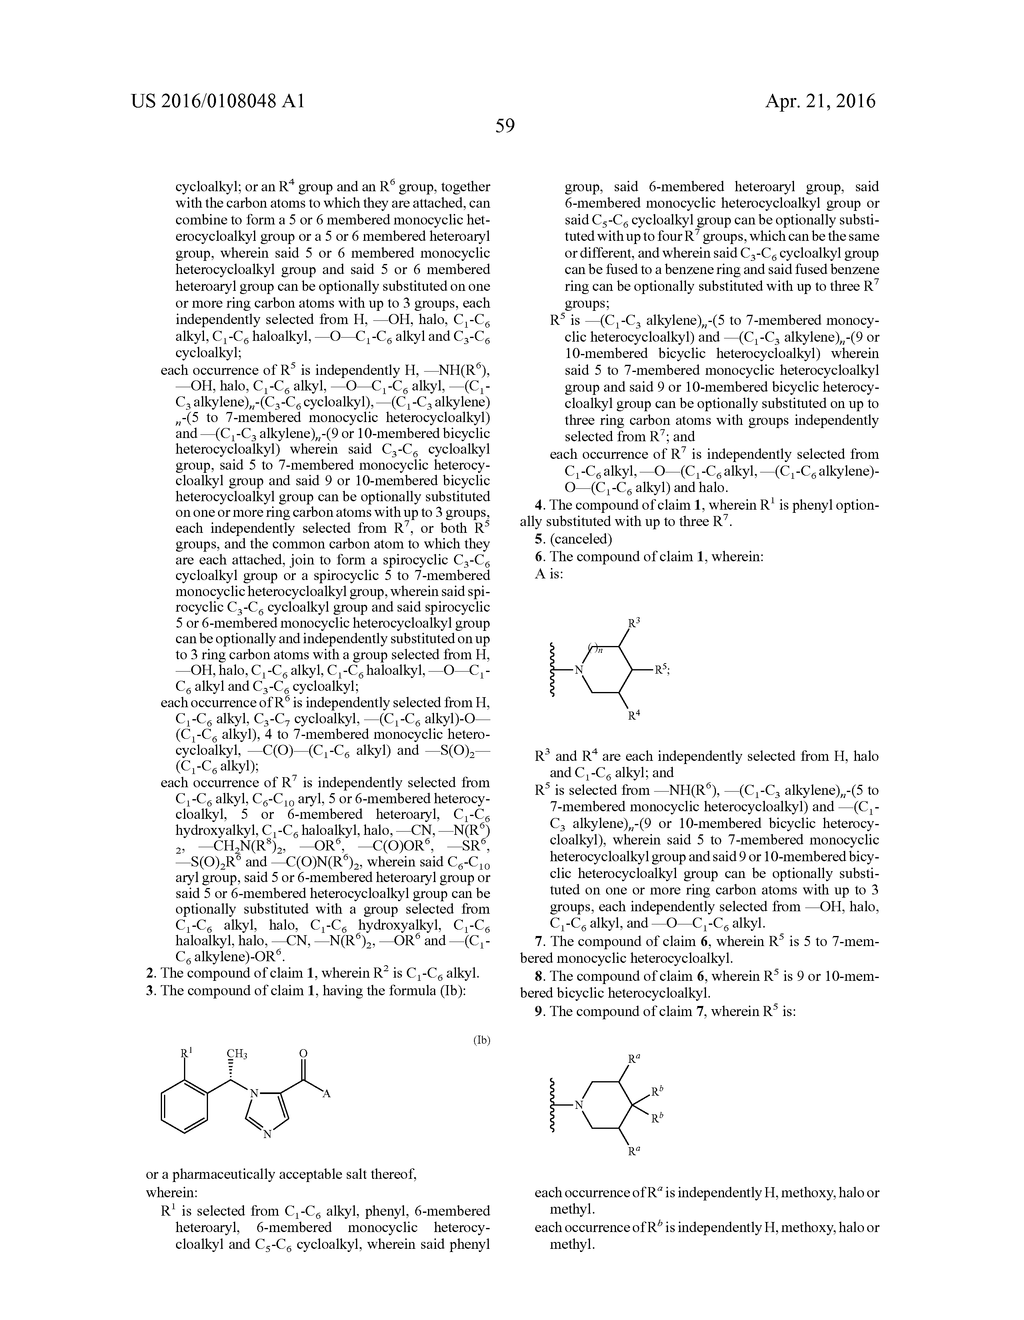 IMIDAZOLE DERIVATIVES AND METHODS OF USE THEREOF FOR IMPROVING THE     PHARMACOKINETICS OF A DRUG - diagram, schematic, and image 60